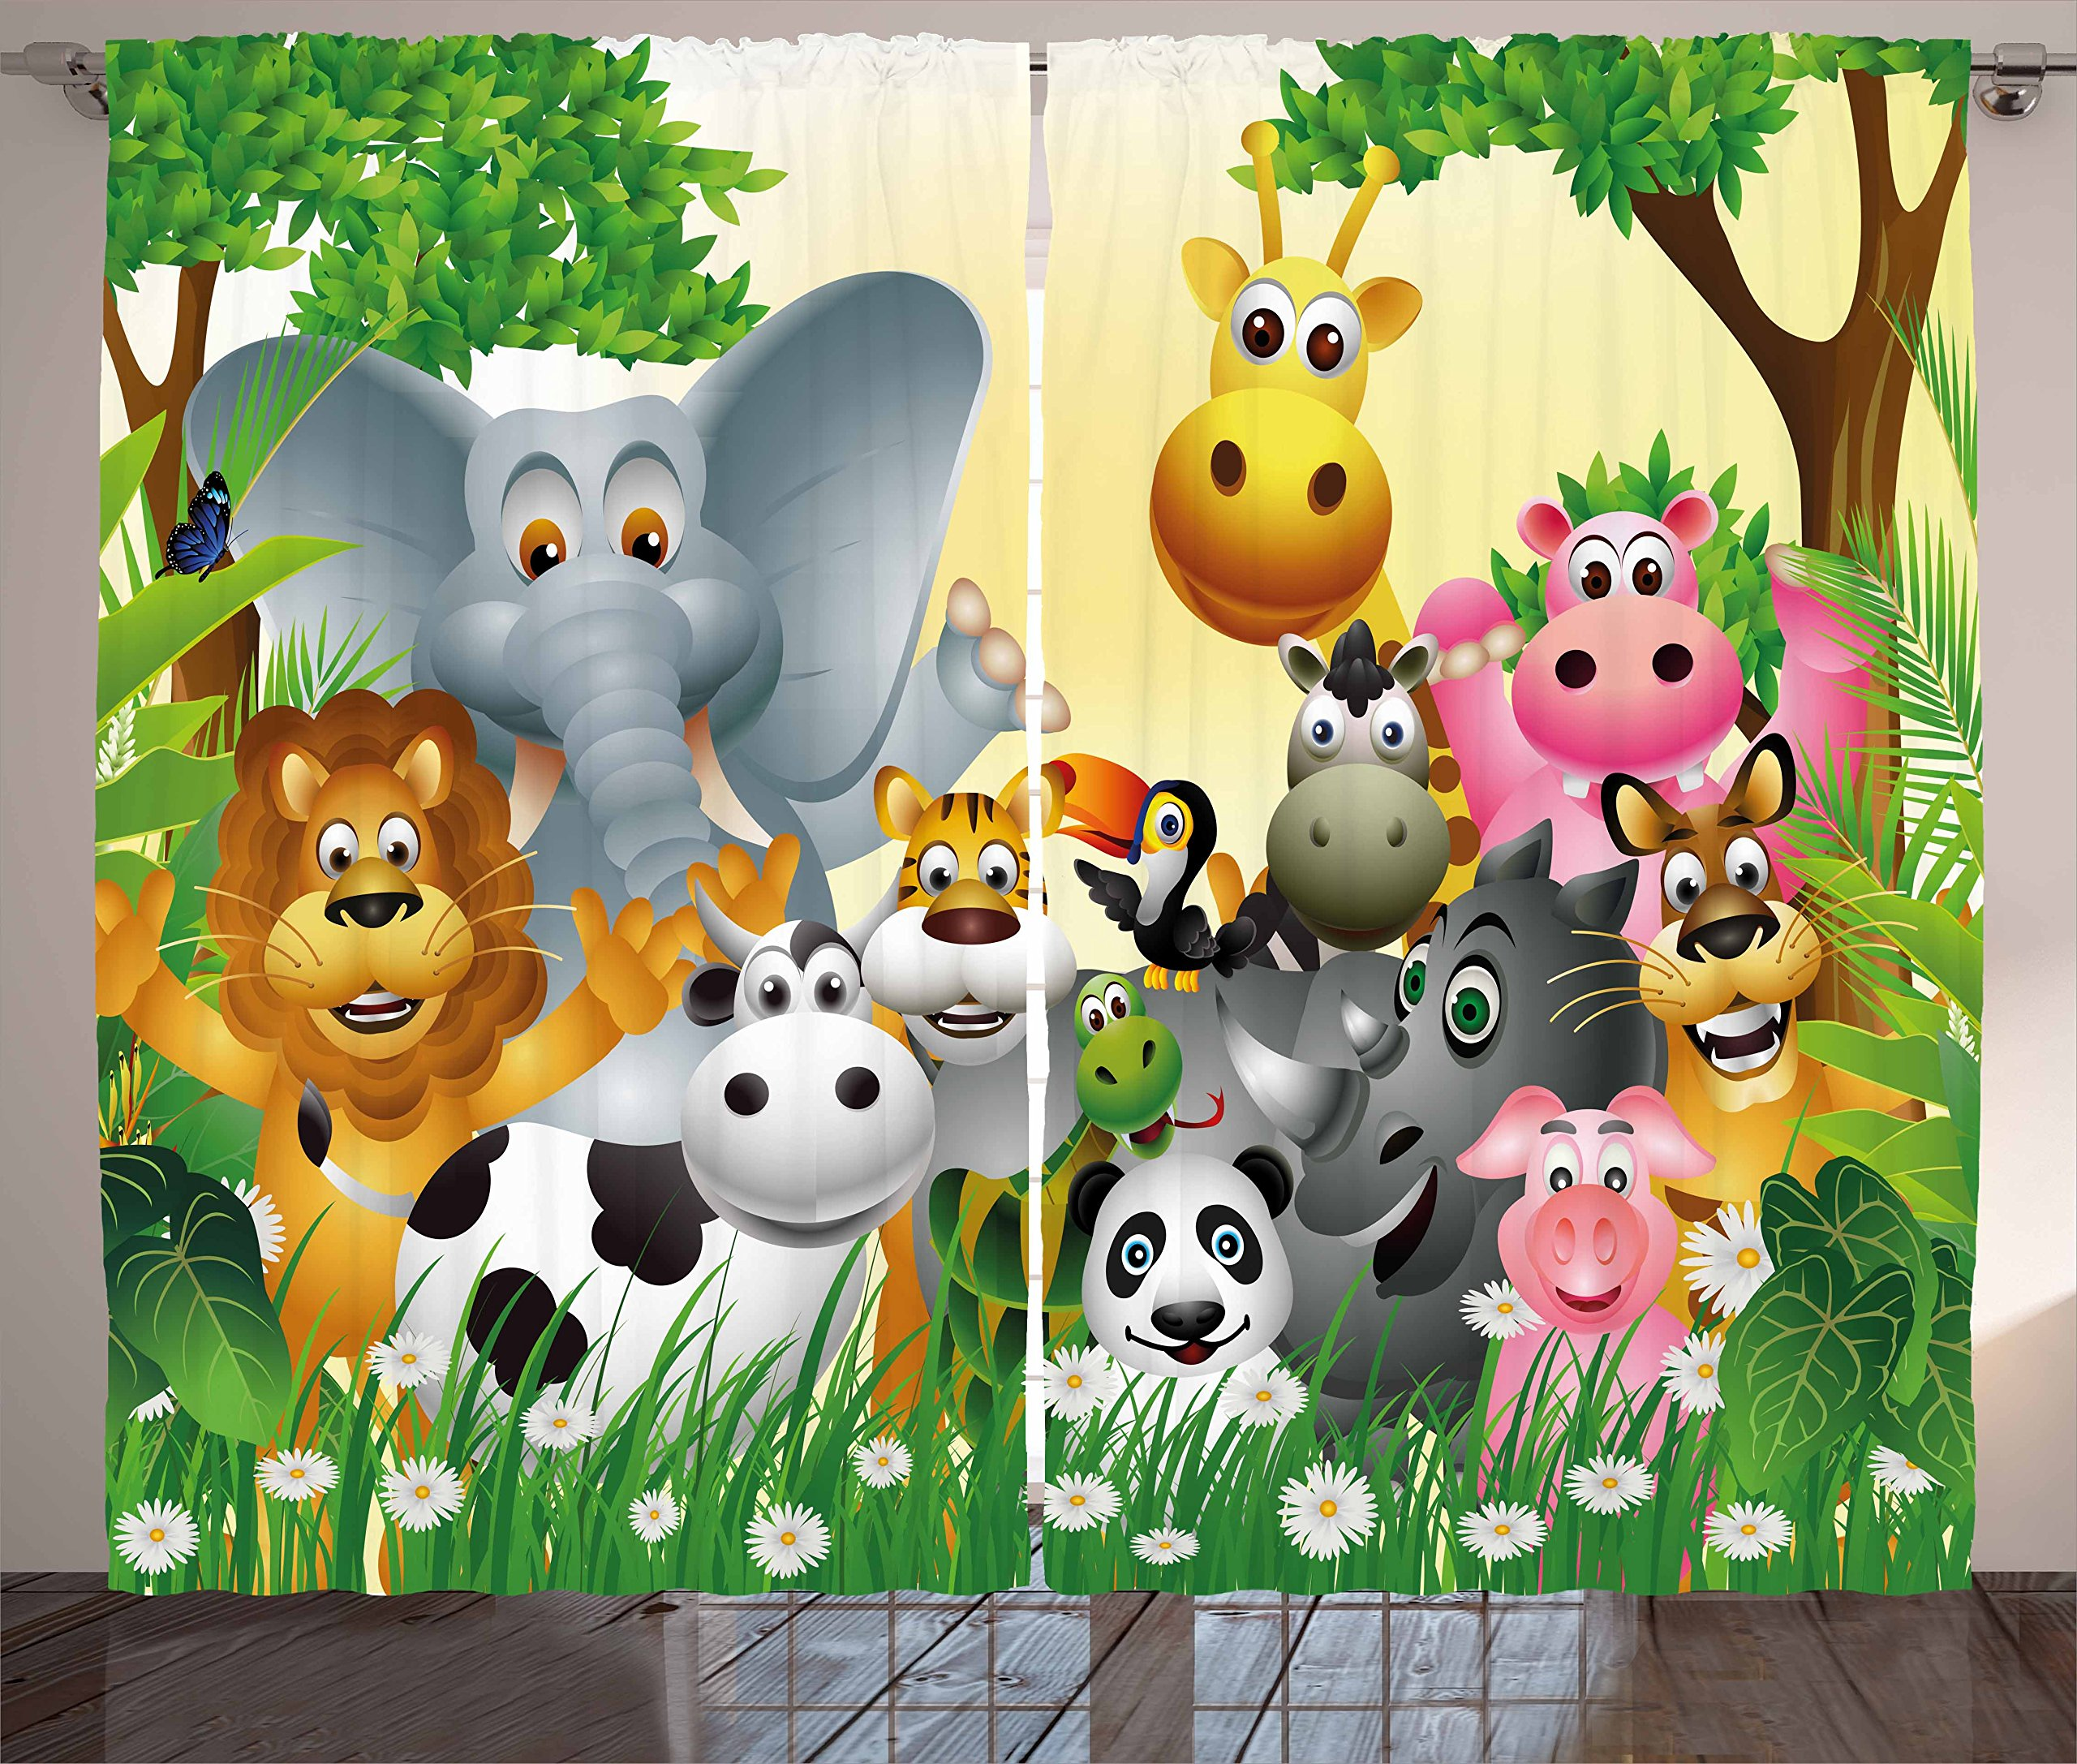 Ambesonne Kids Decor Curtains, Cute Animals in Jungle Elephant Giraffe Panda Bear Pig Lion Hippo Rhino Cartoon, Living Room Bedroom Window Drapes 2 Panel Set, 108 W X 63 L inches, Multicolor by Ambesonne (Image #1)